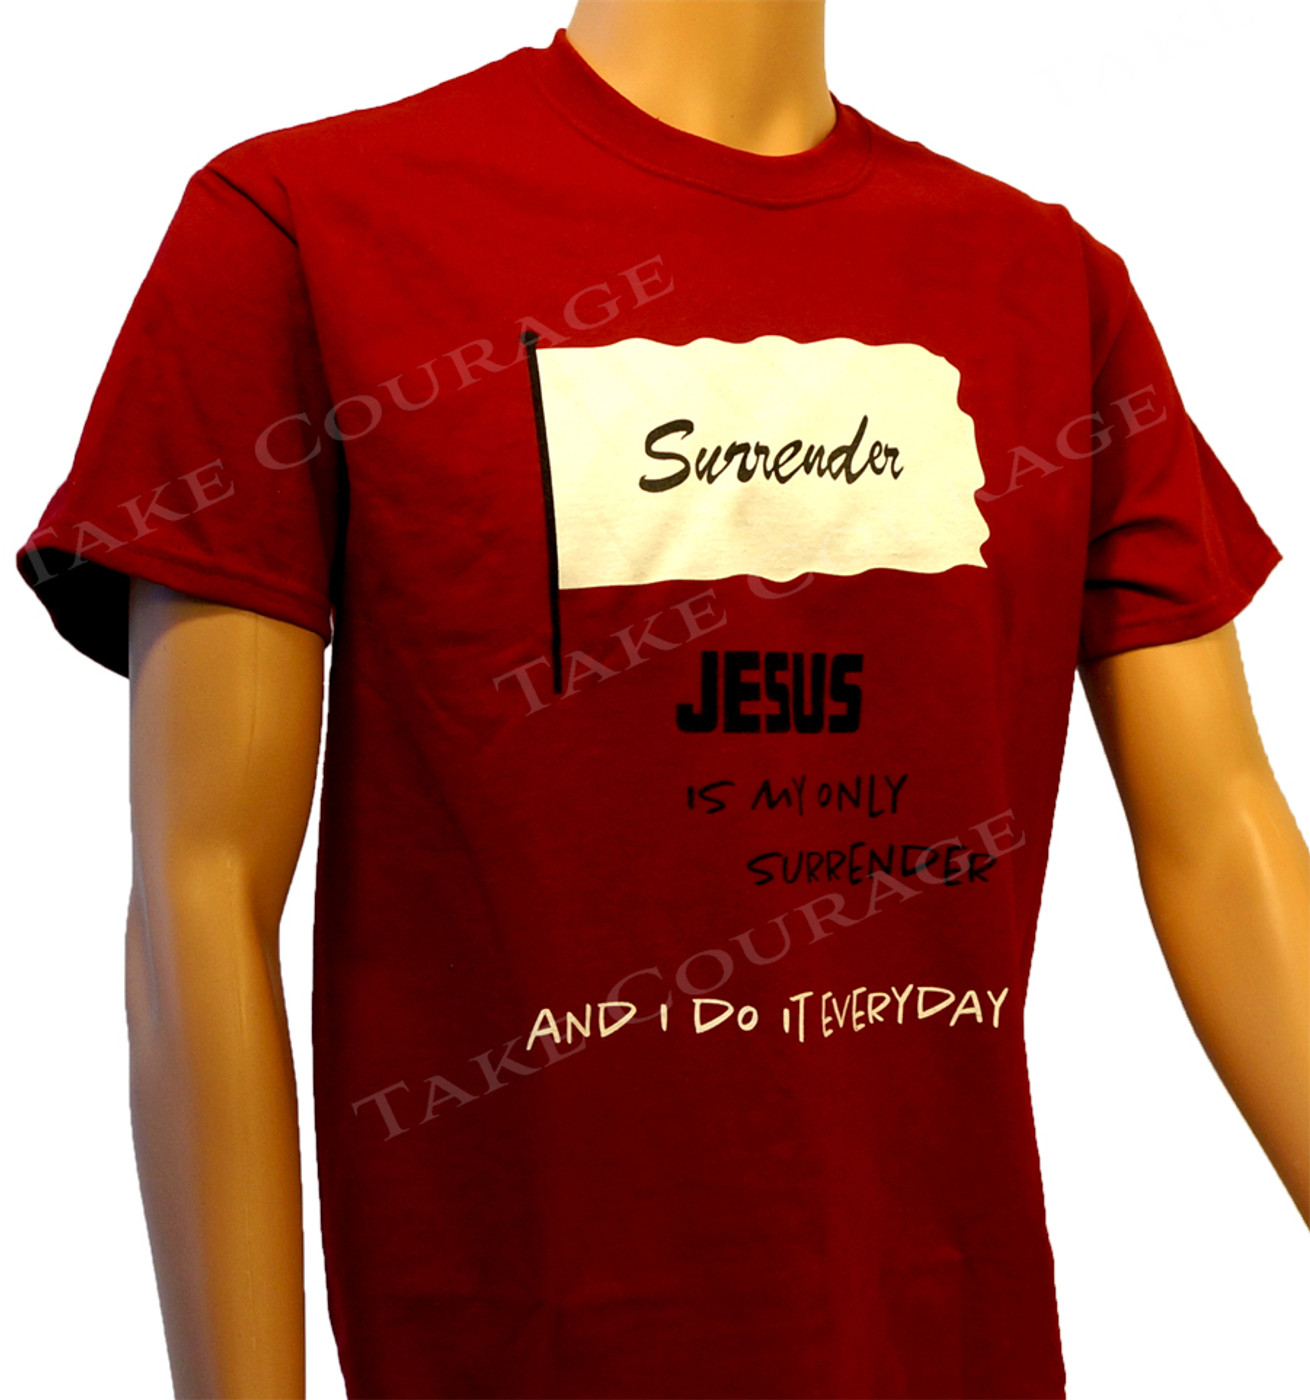 Surrender - Christian Shirt  - Red